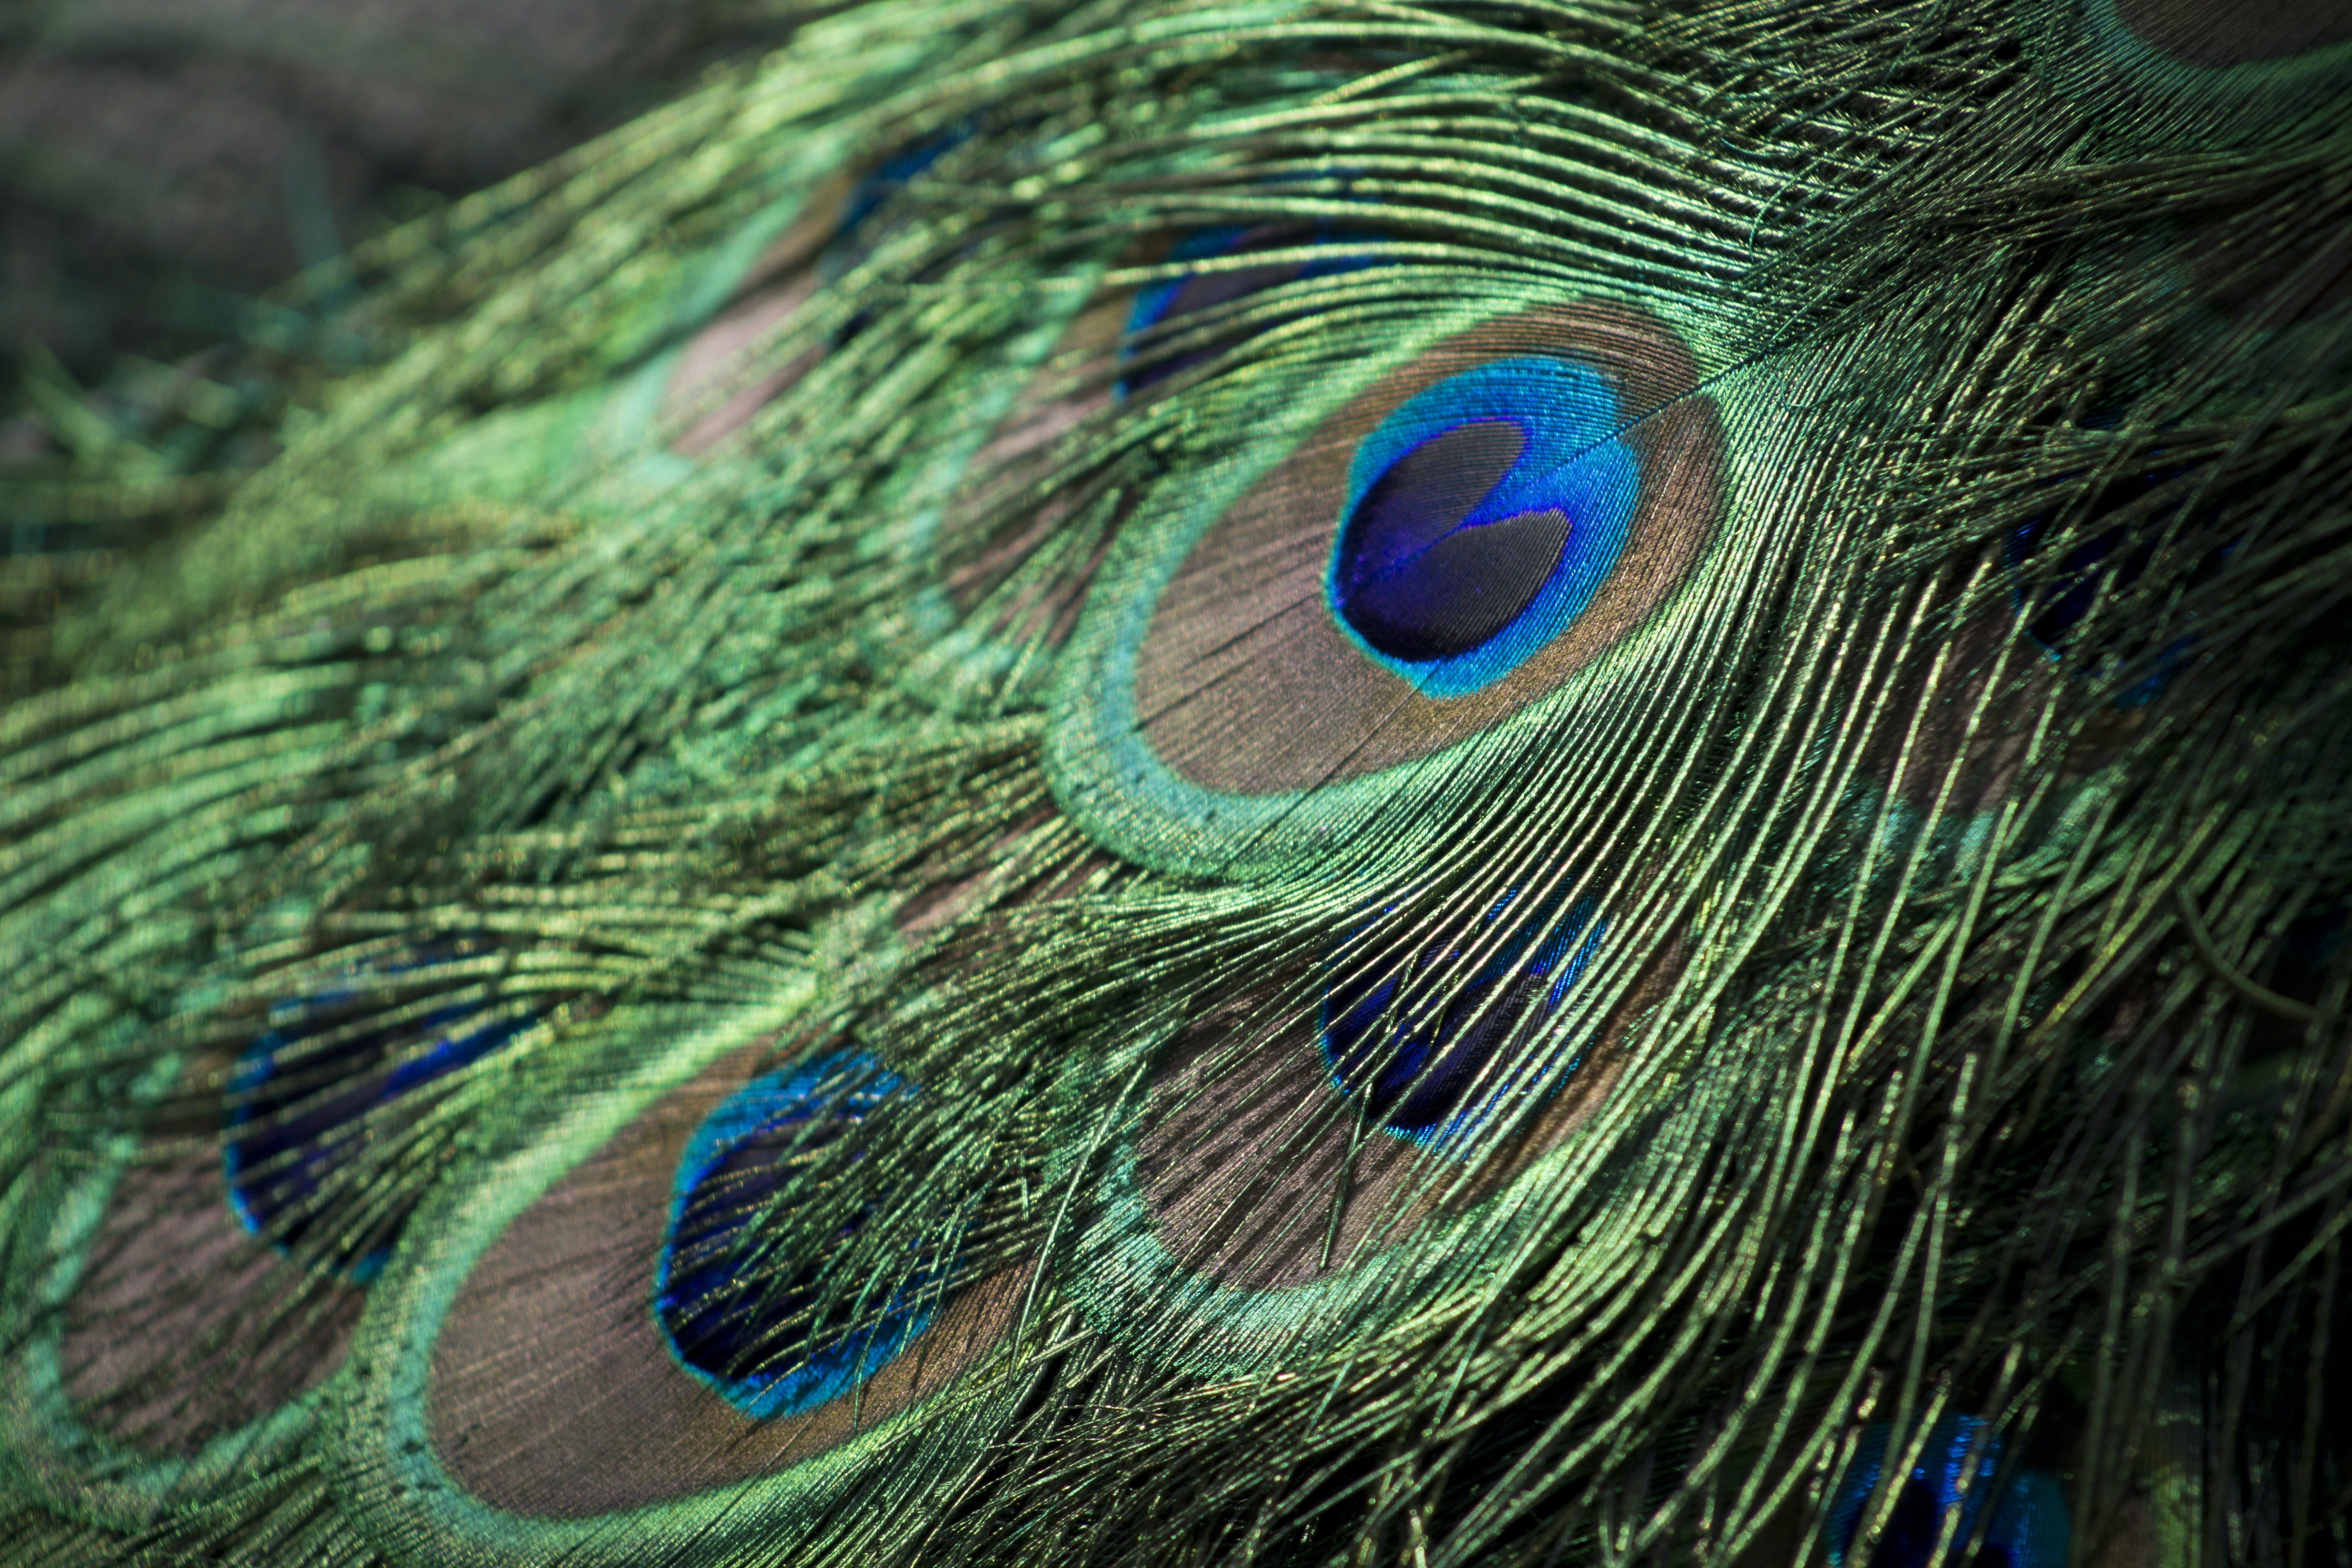 closeup photography of green, gray, and blue Peacock feathers